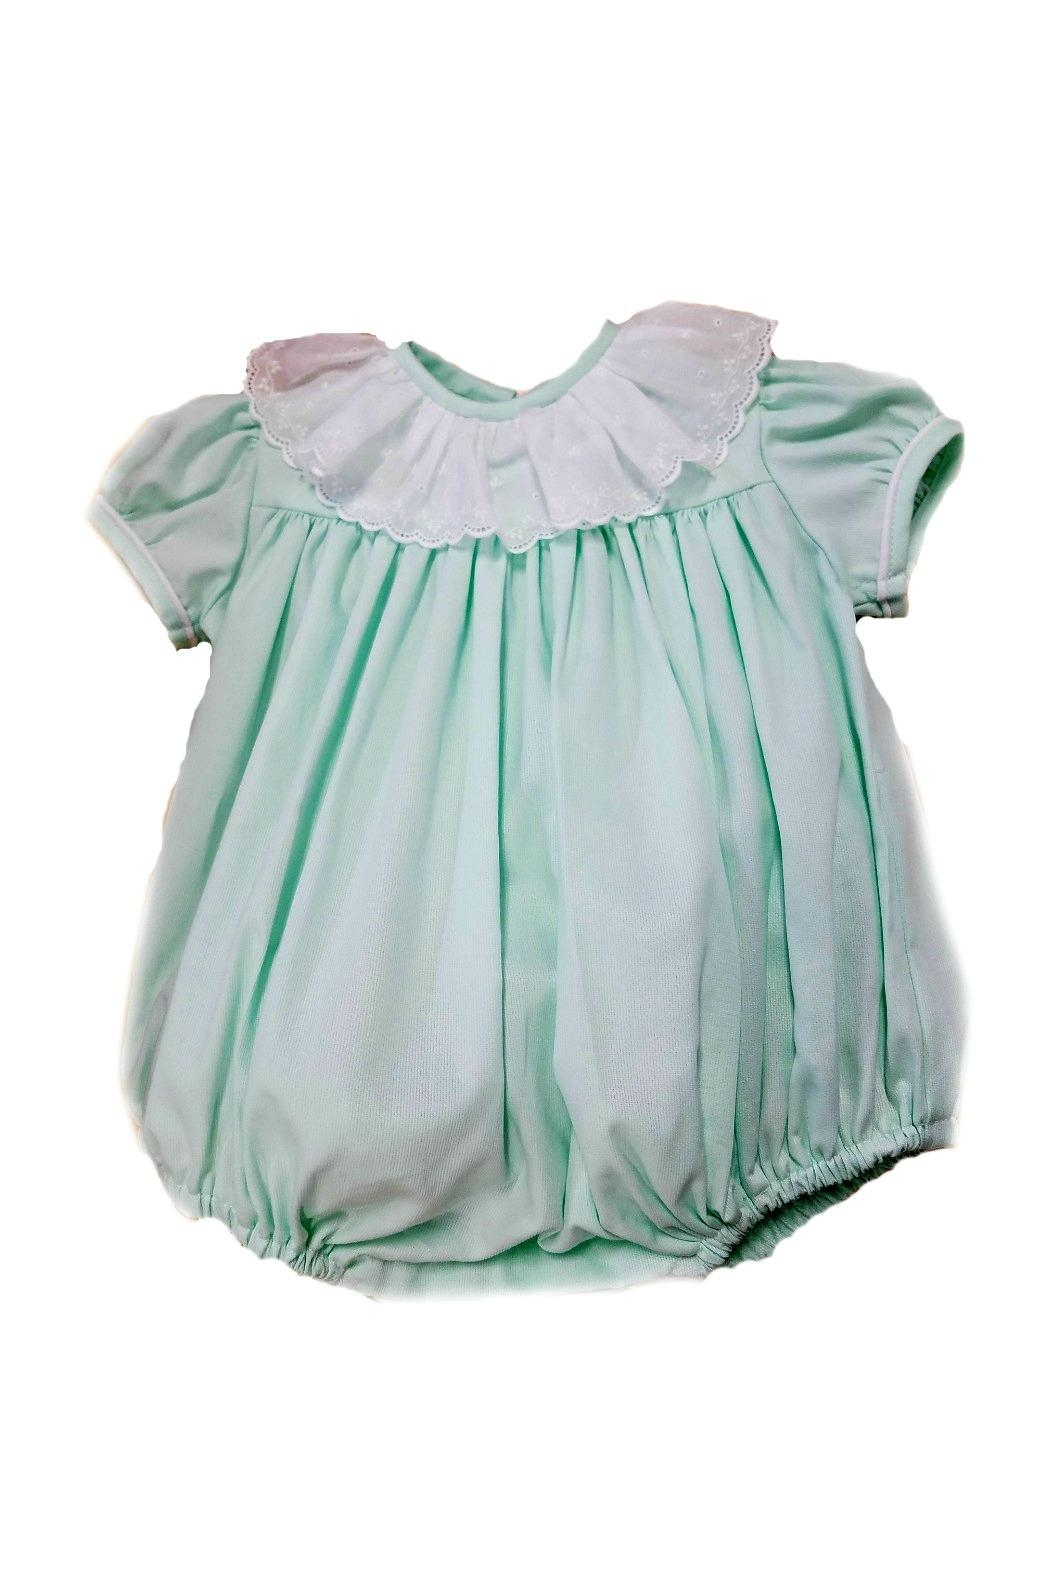 James & Lottie Fiona Seafoam-Green-White-Eyelet-Collar Bubble - Front Cropped Image